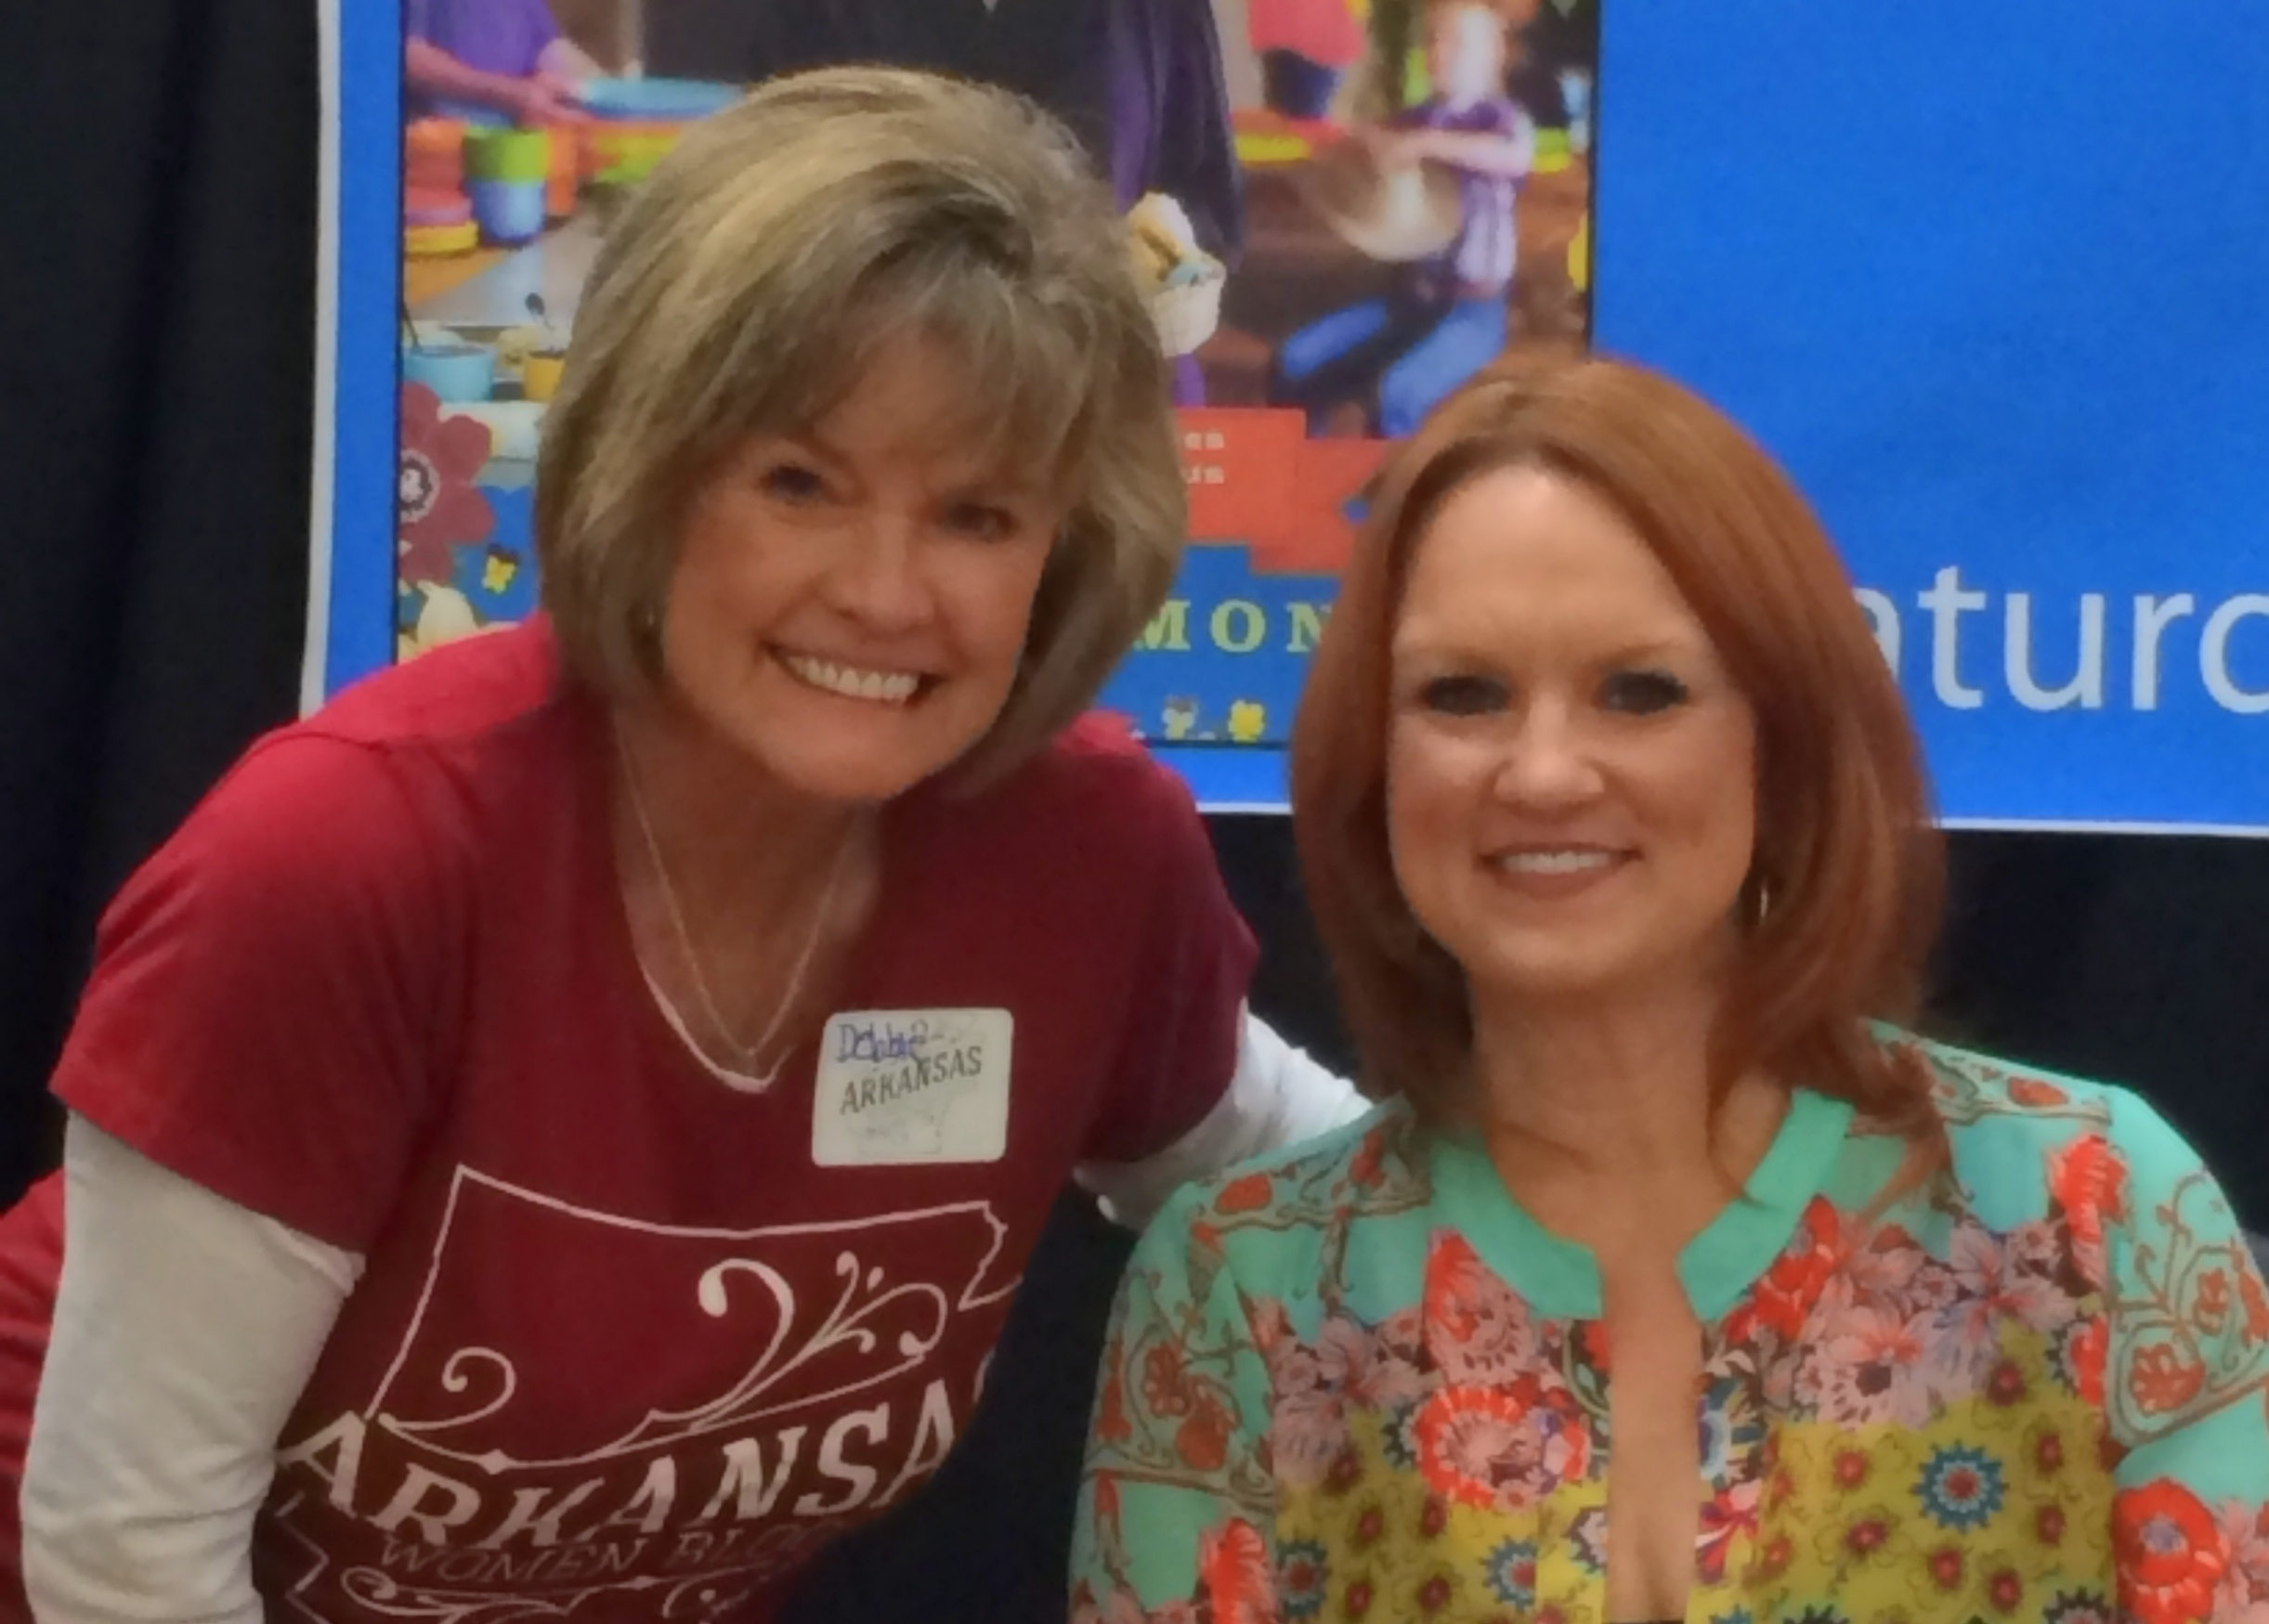 thepioneerwoman and me